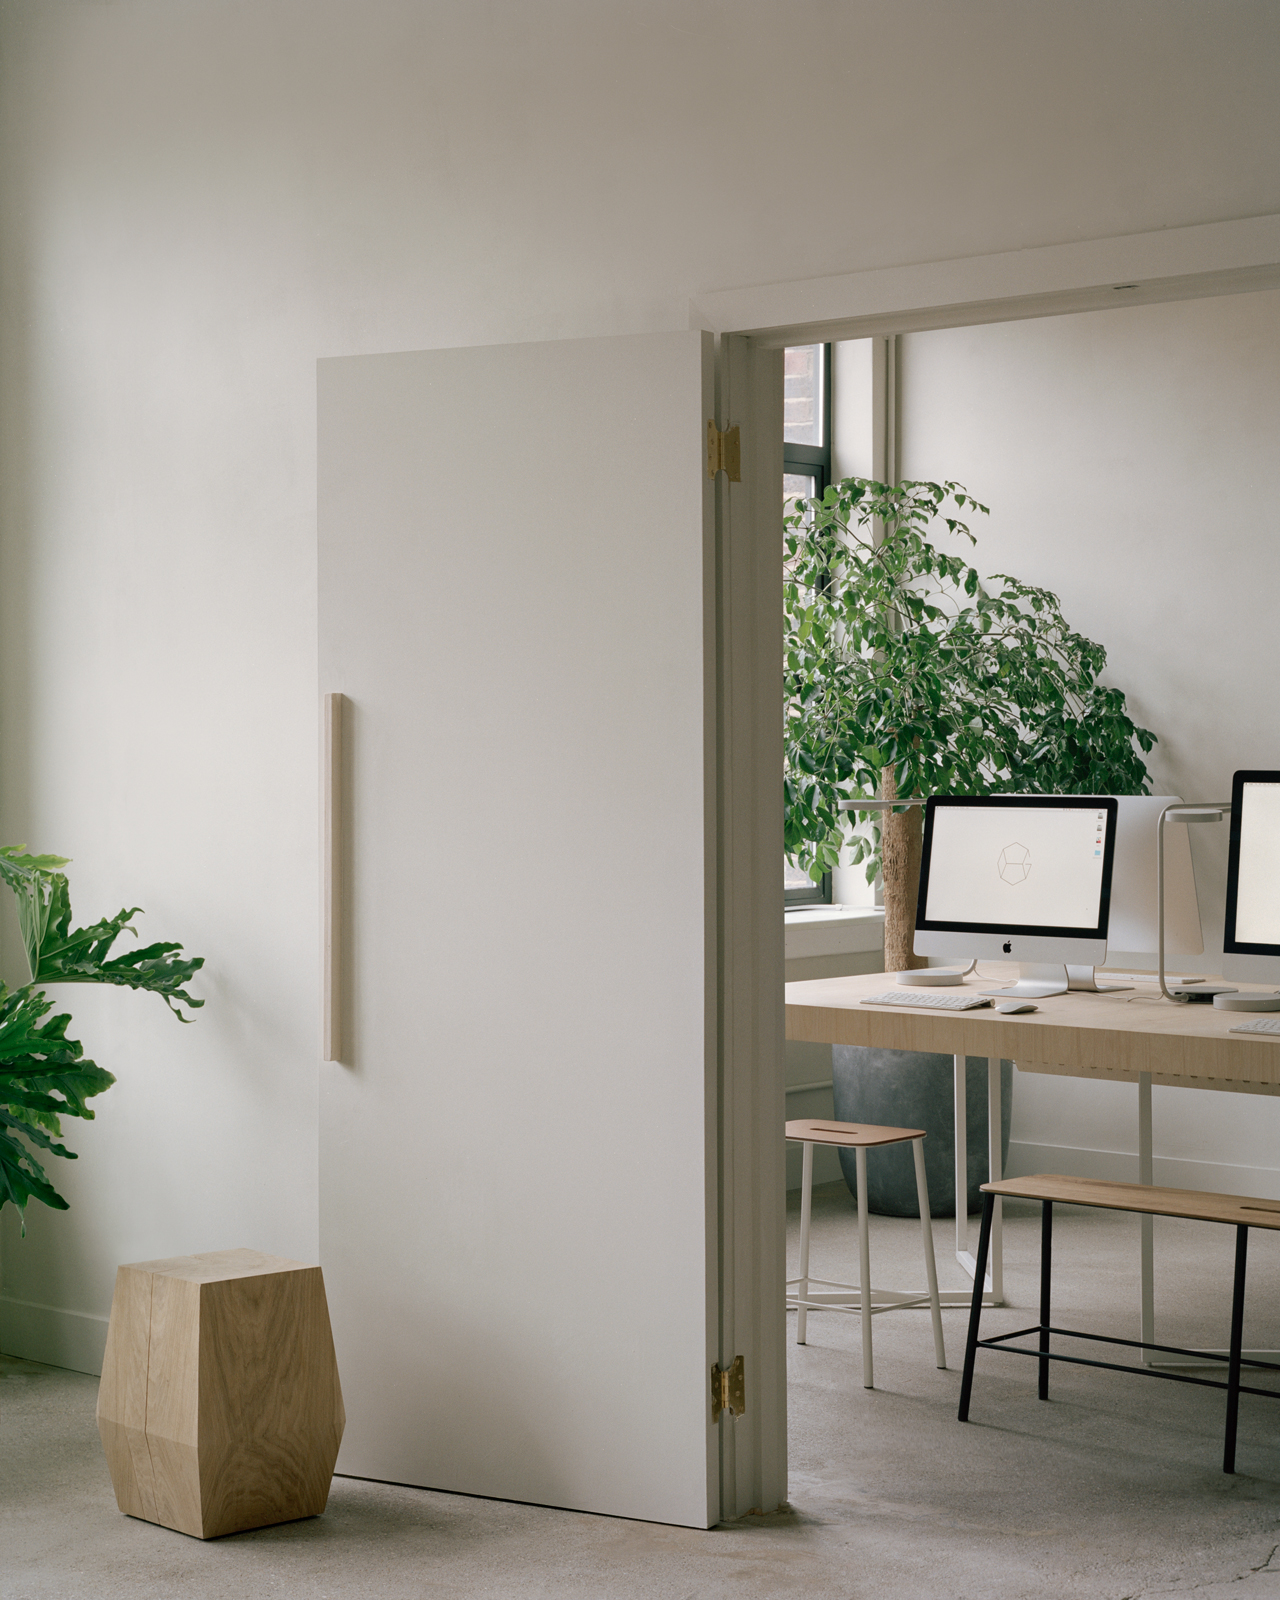 Image: House of Grey Studio. Photography by Rory Gardiner.